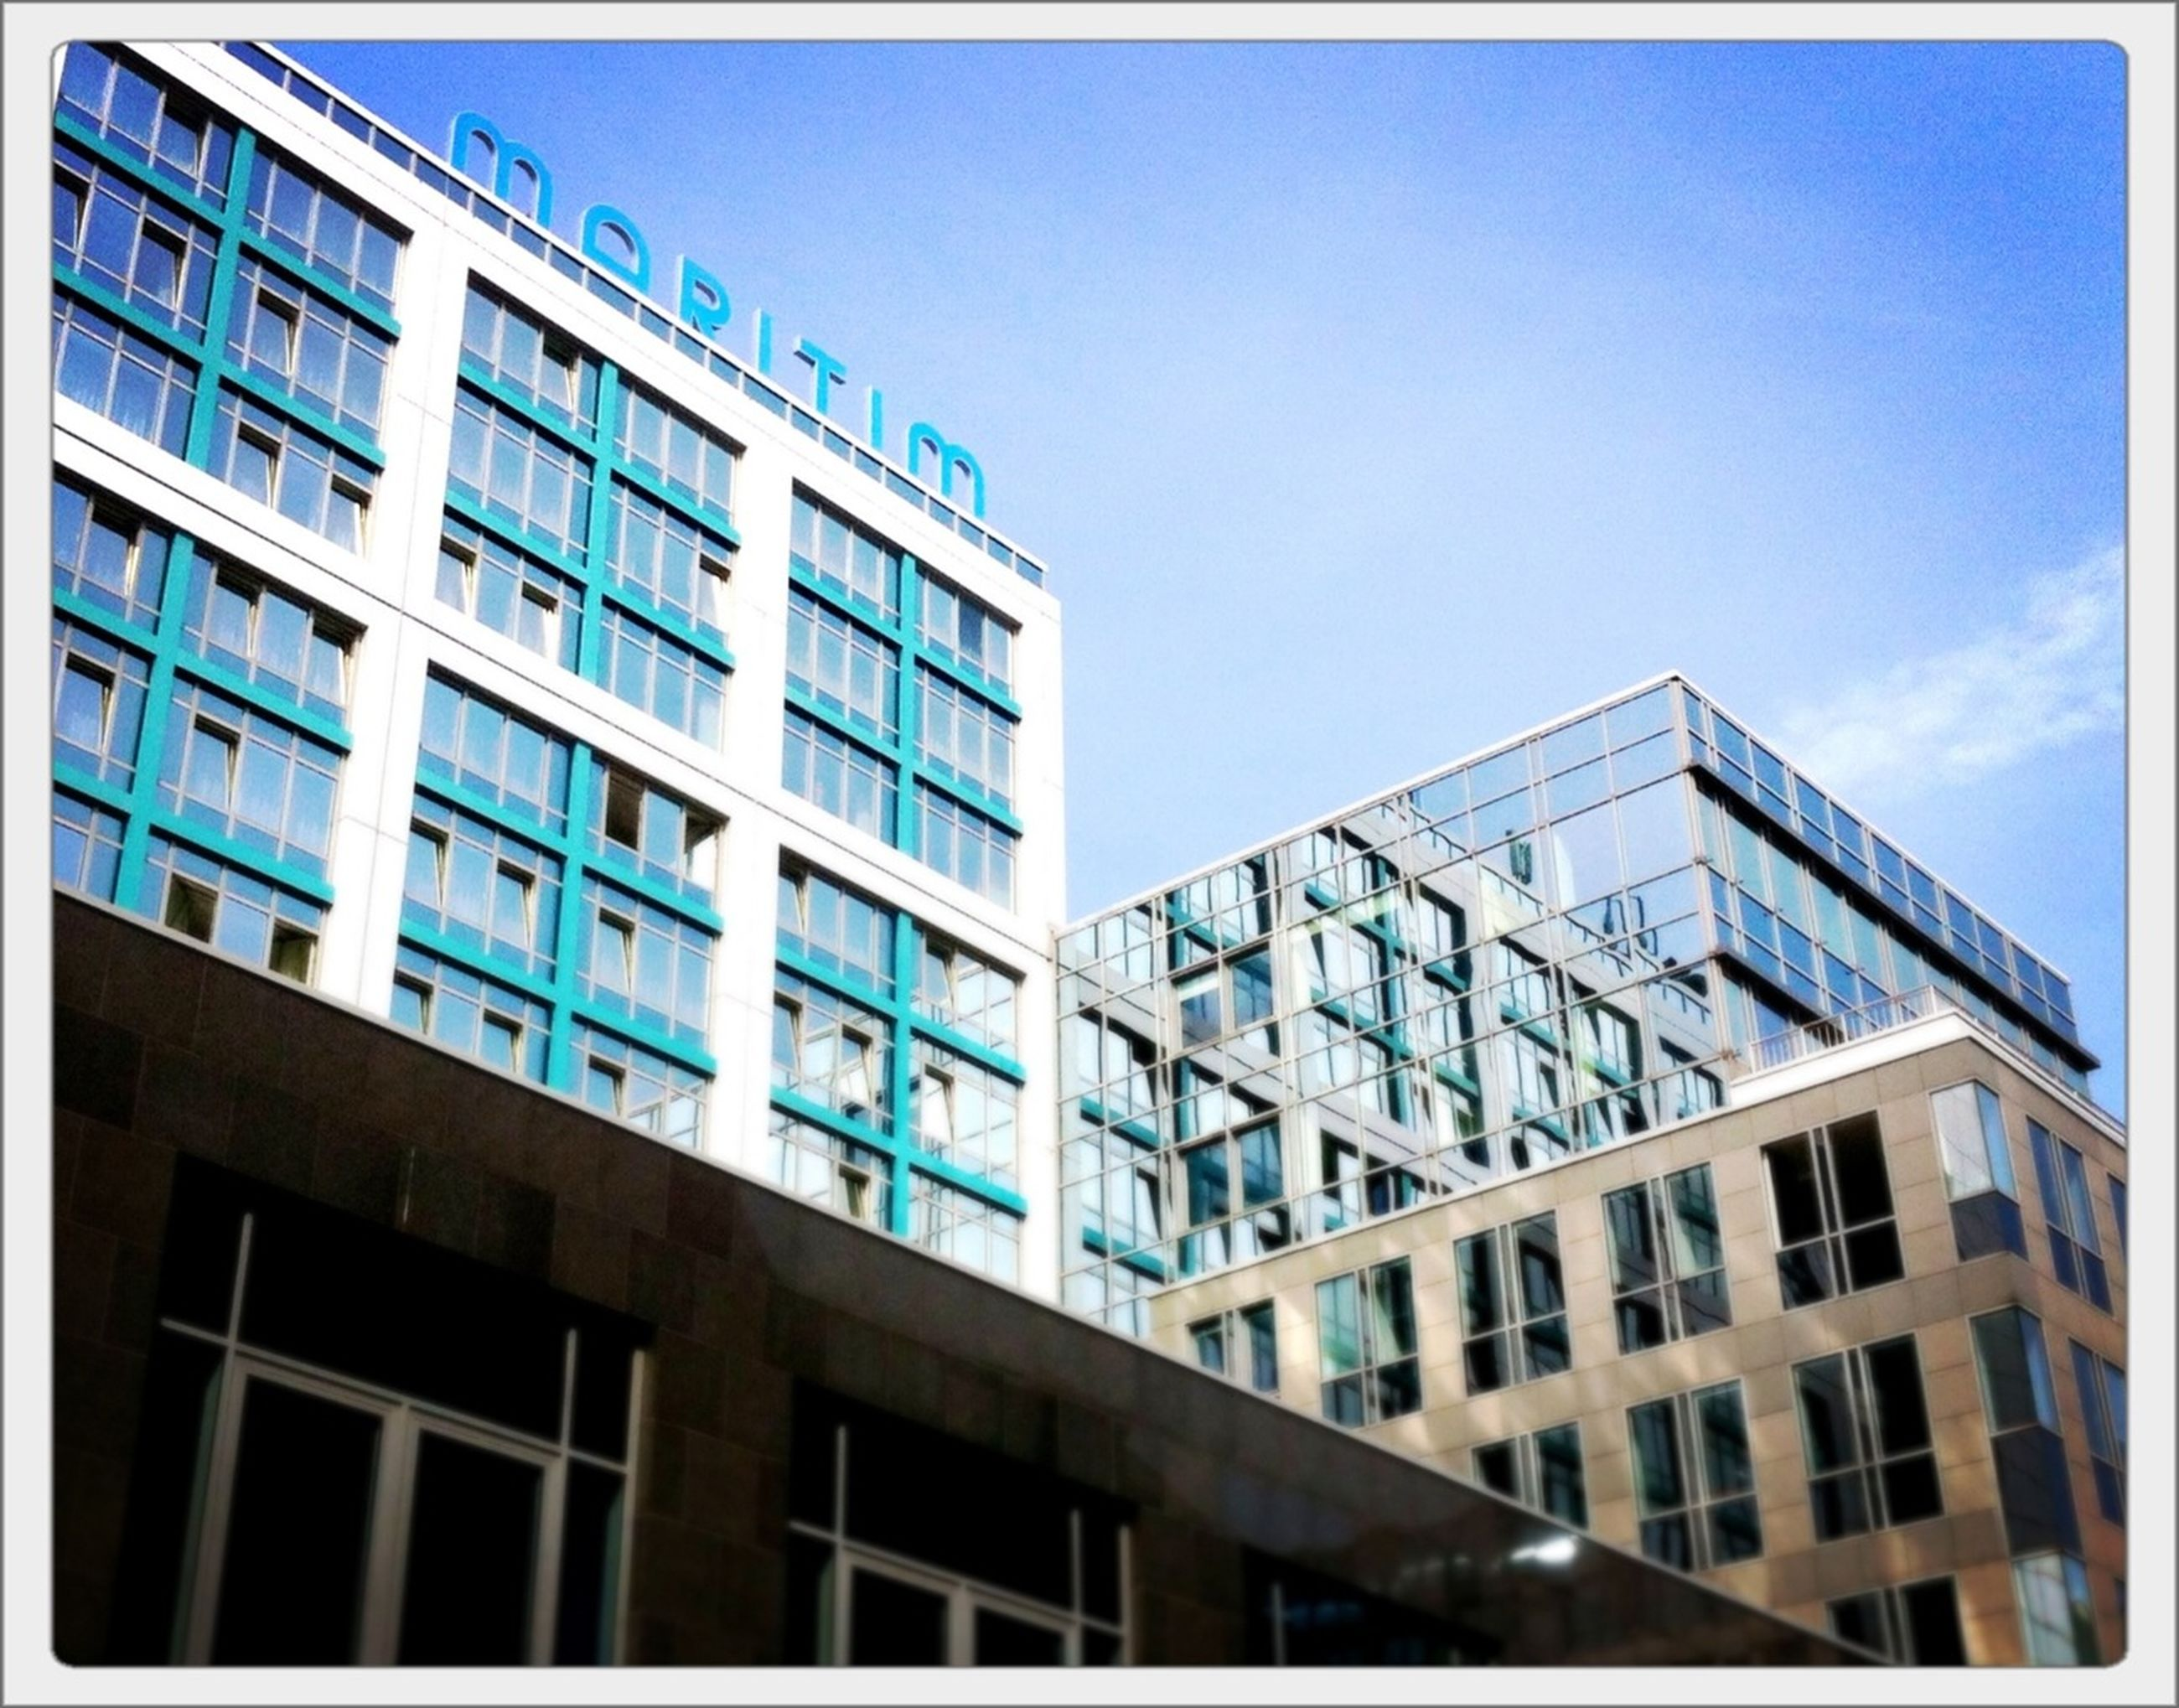 architecture, building exterior, built structure, low angle view, window, city, building, modern, blue, sky, office building, glass - material, residential building, clear sky, residential structure, day, transfer print, auto post production filter, apartment, reflection